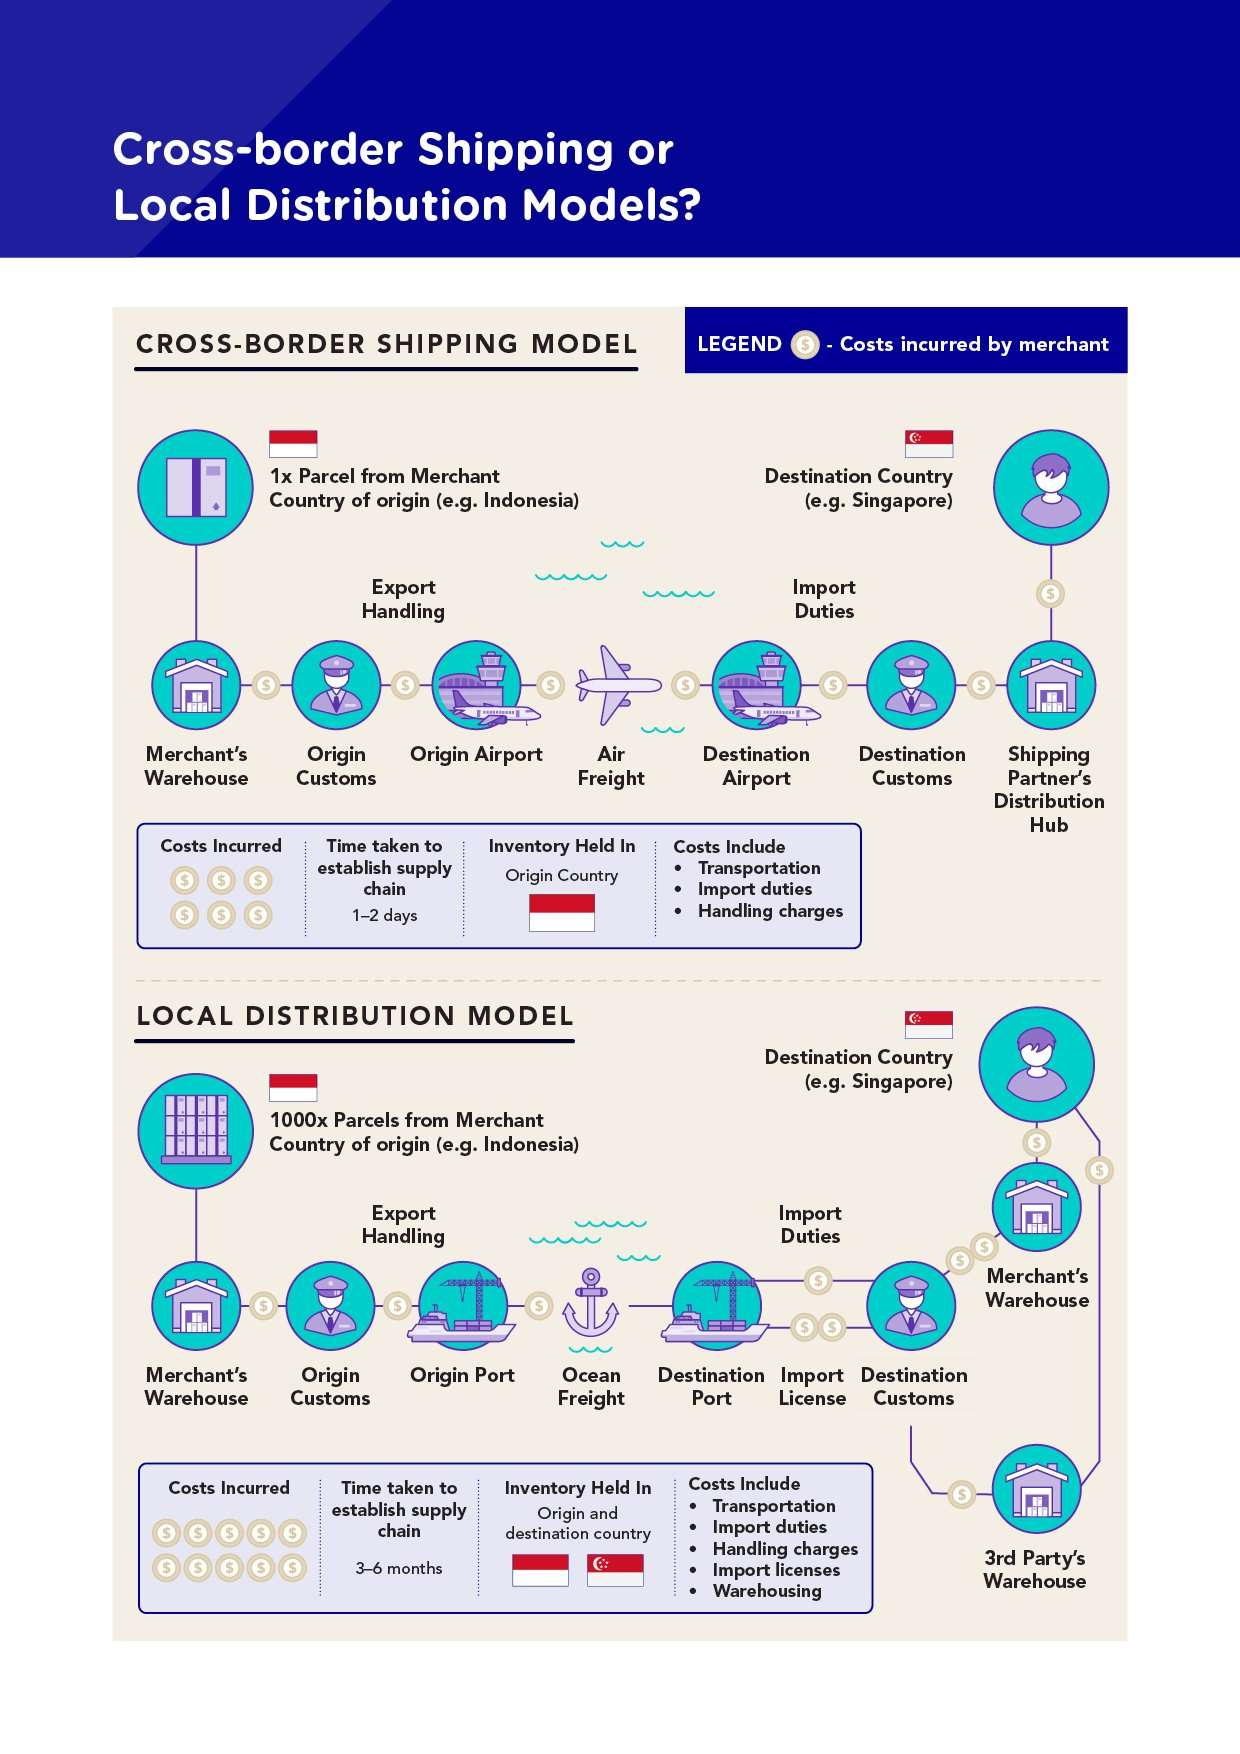 Infographic flowchart comparing cross-border shipping or local distribution